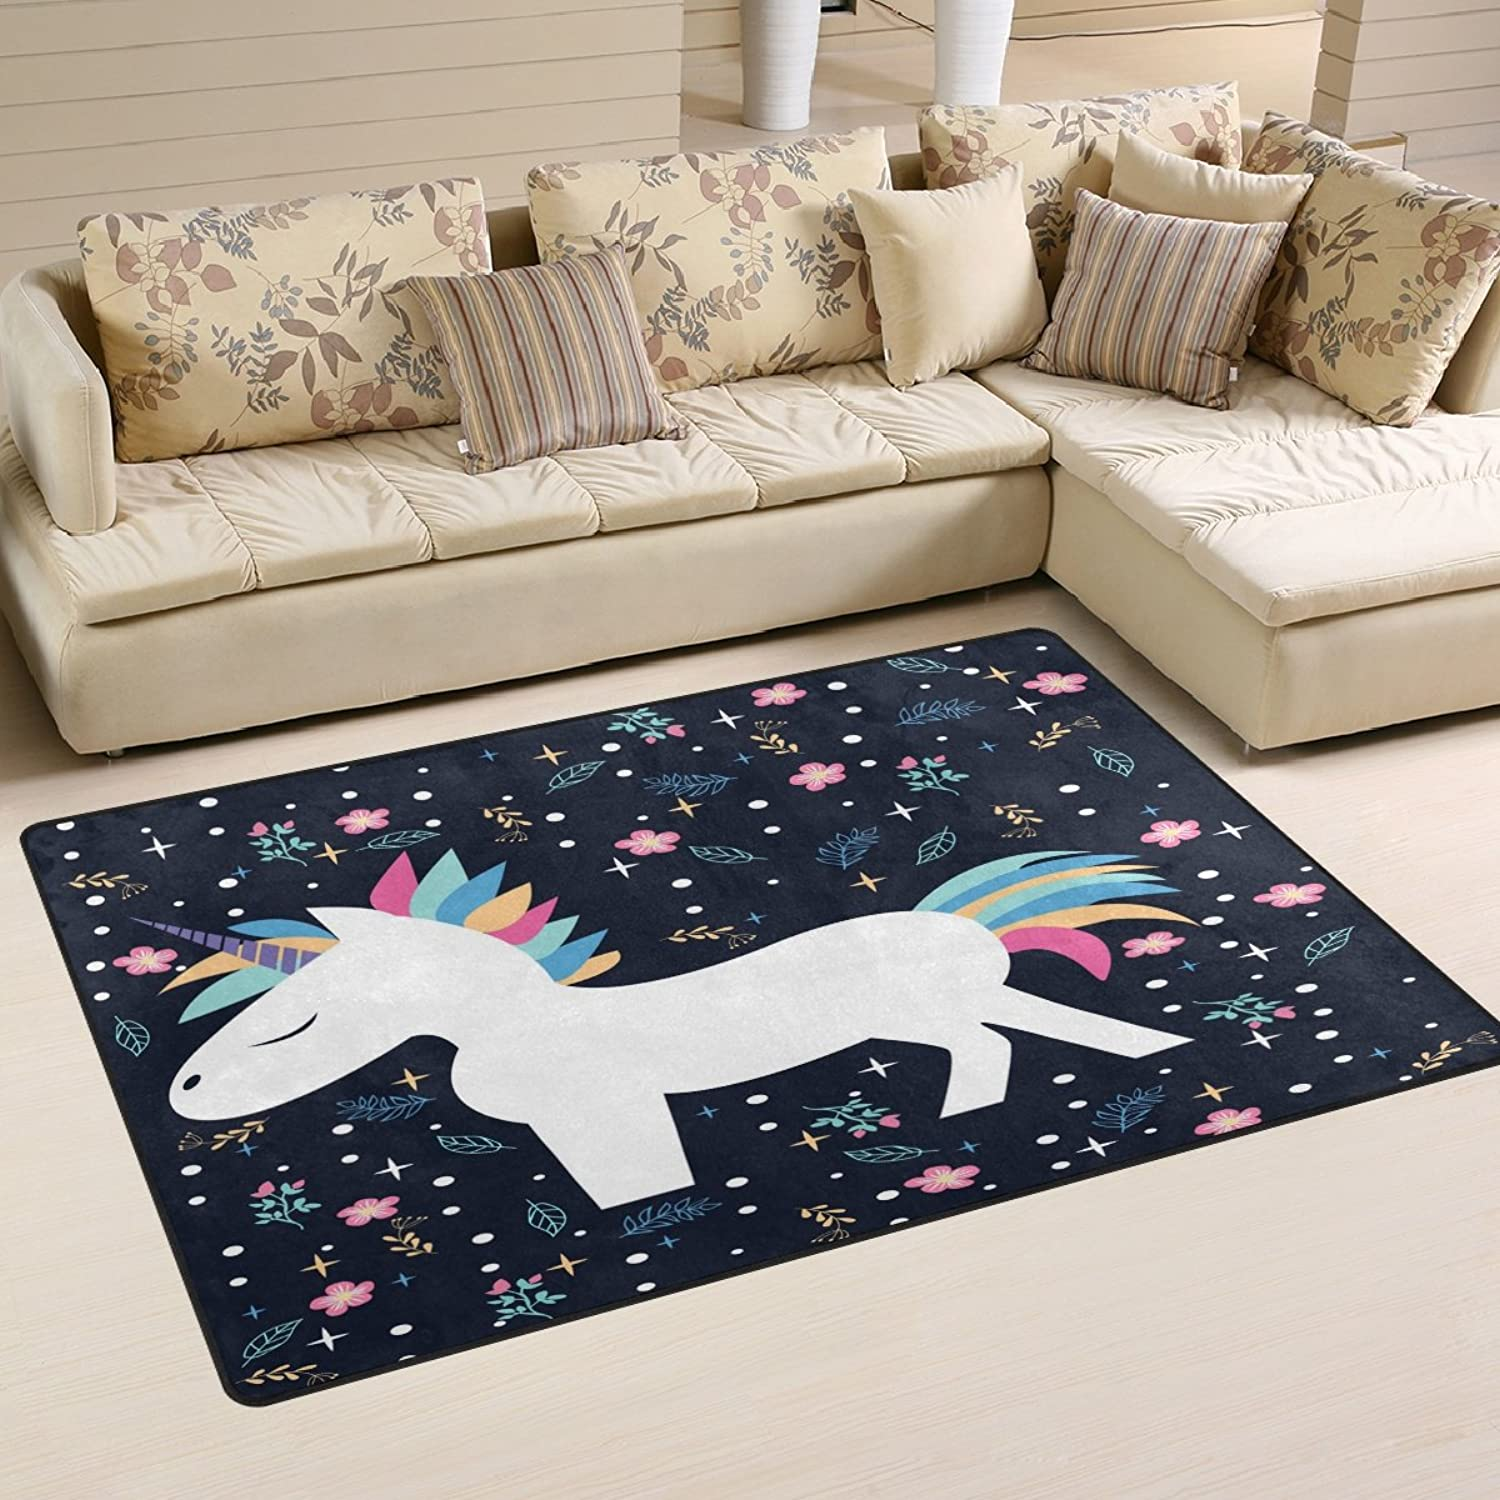 WOZO Floral Cute Animal Unicorn Area Rug Rugs Non-Slip Floor Mat Doormats Living Room Bedroom 60 x 39 inches